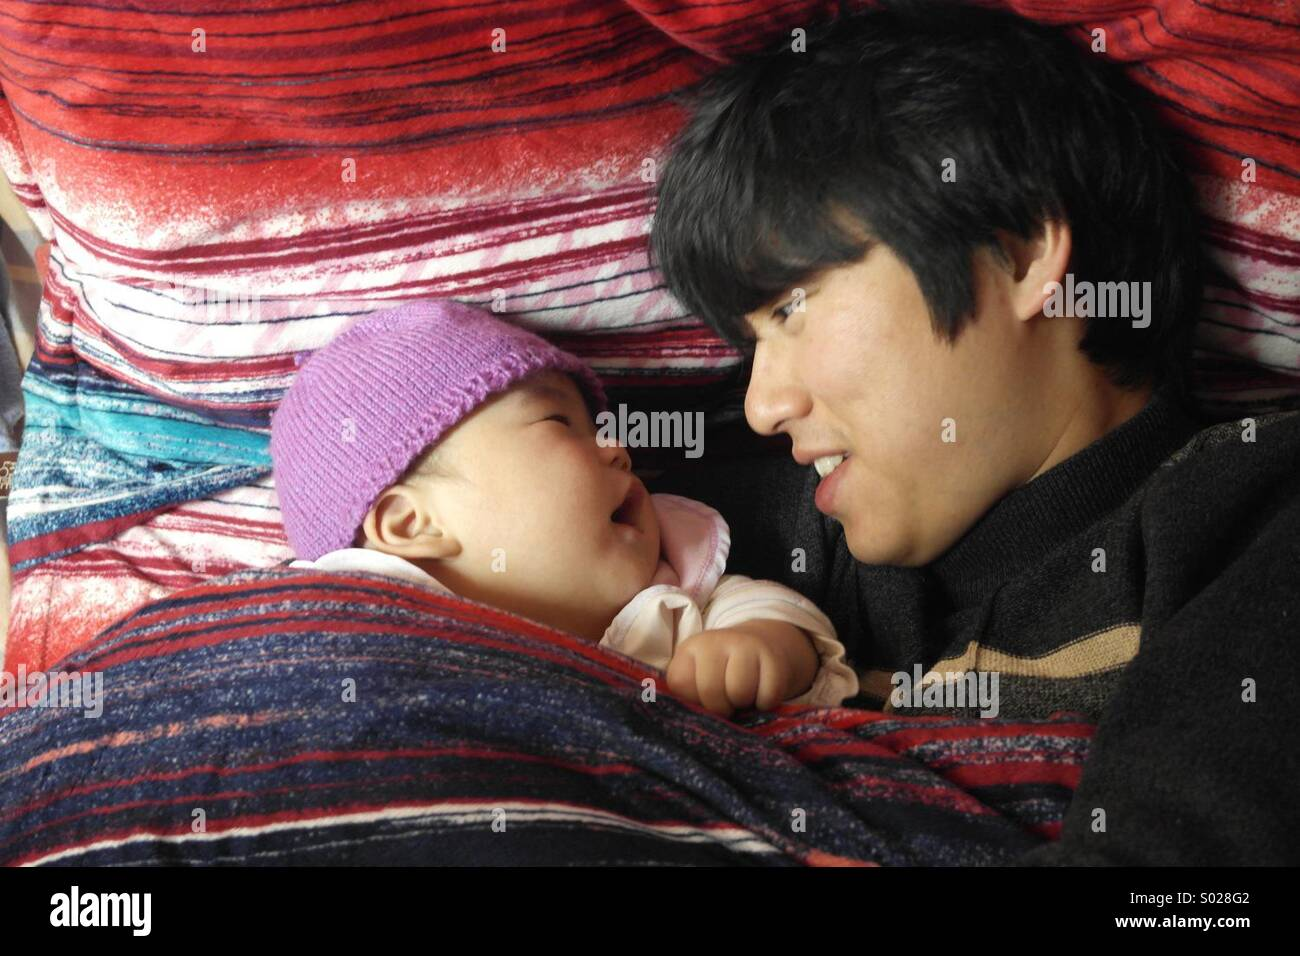 Asian father and son,6 months baby - Stock Image